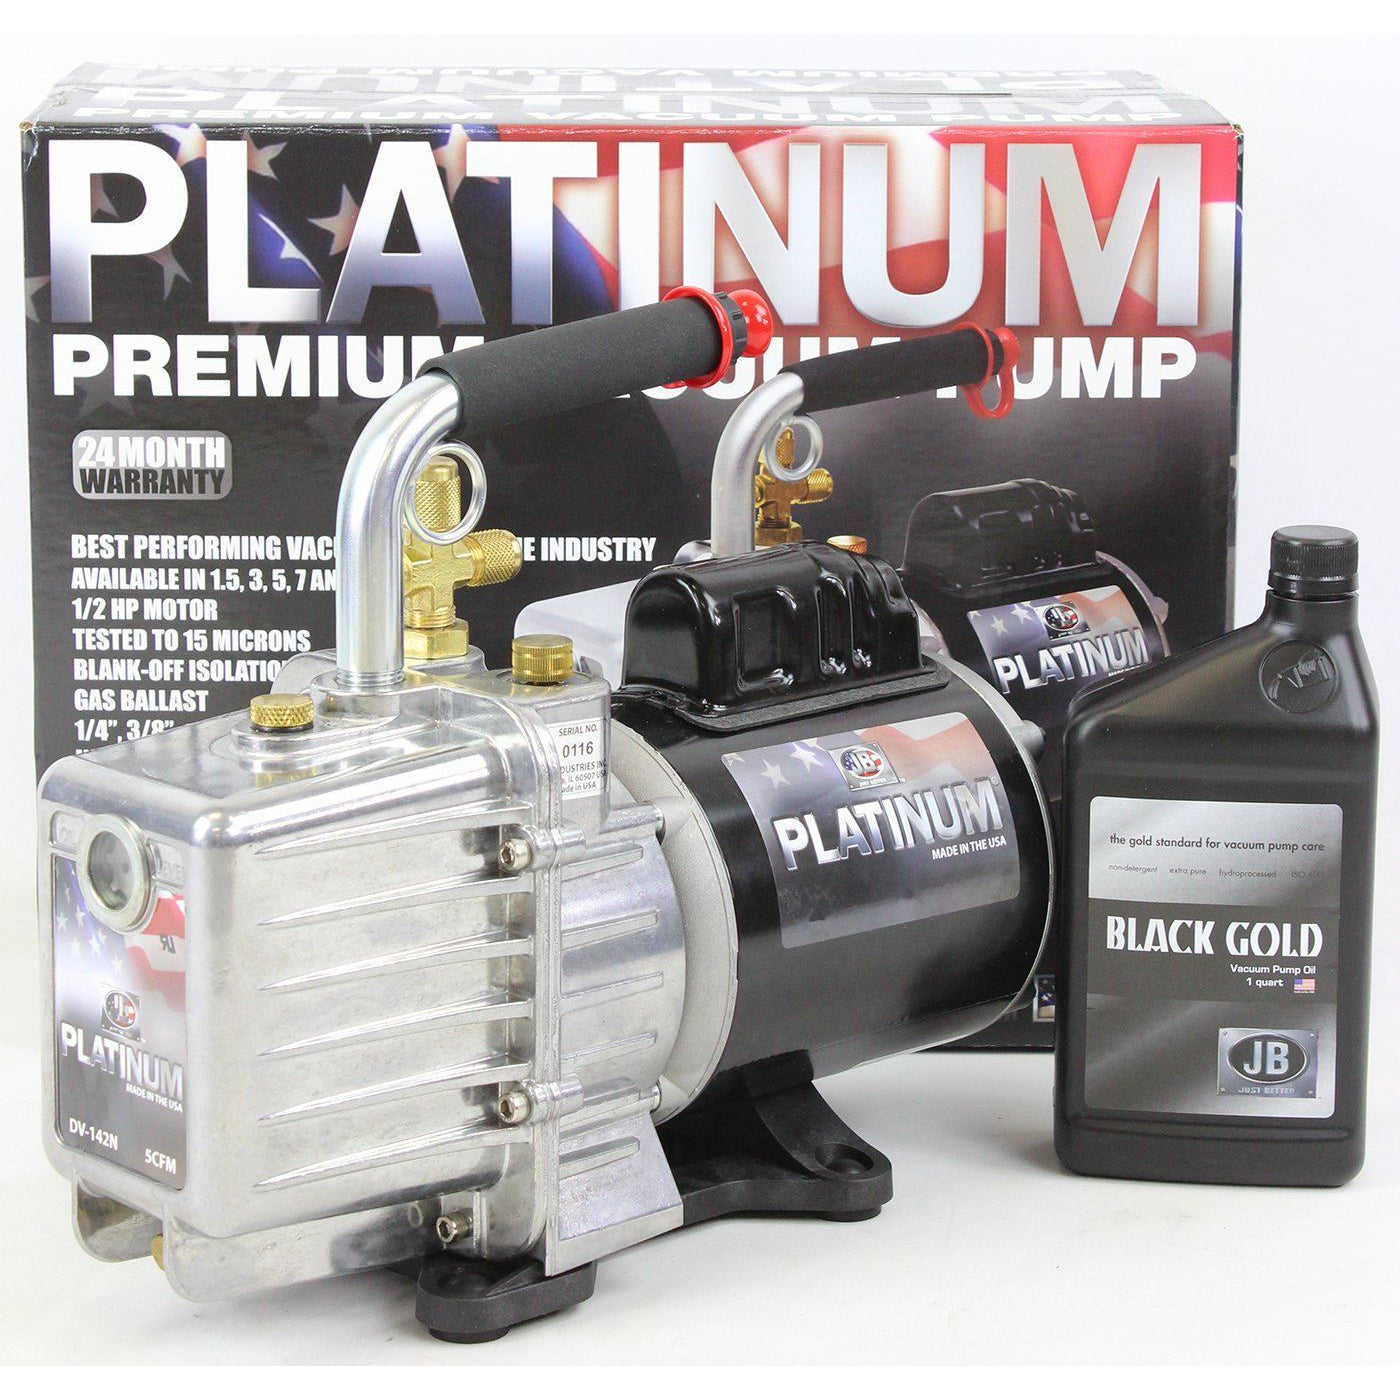 Just Better 10CFM 2 Stage Deep Vacuum Pump - USA Made Shop All Categories JB Industries